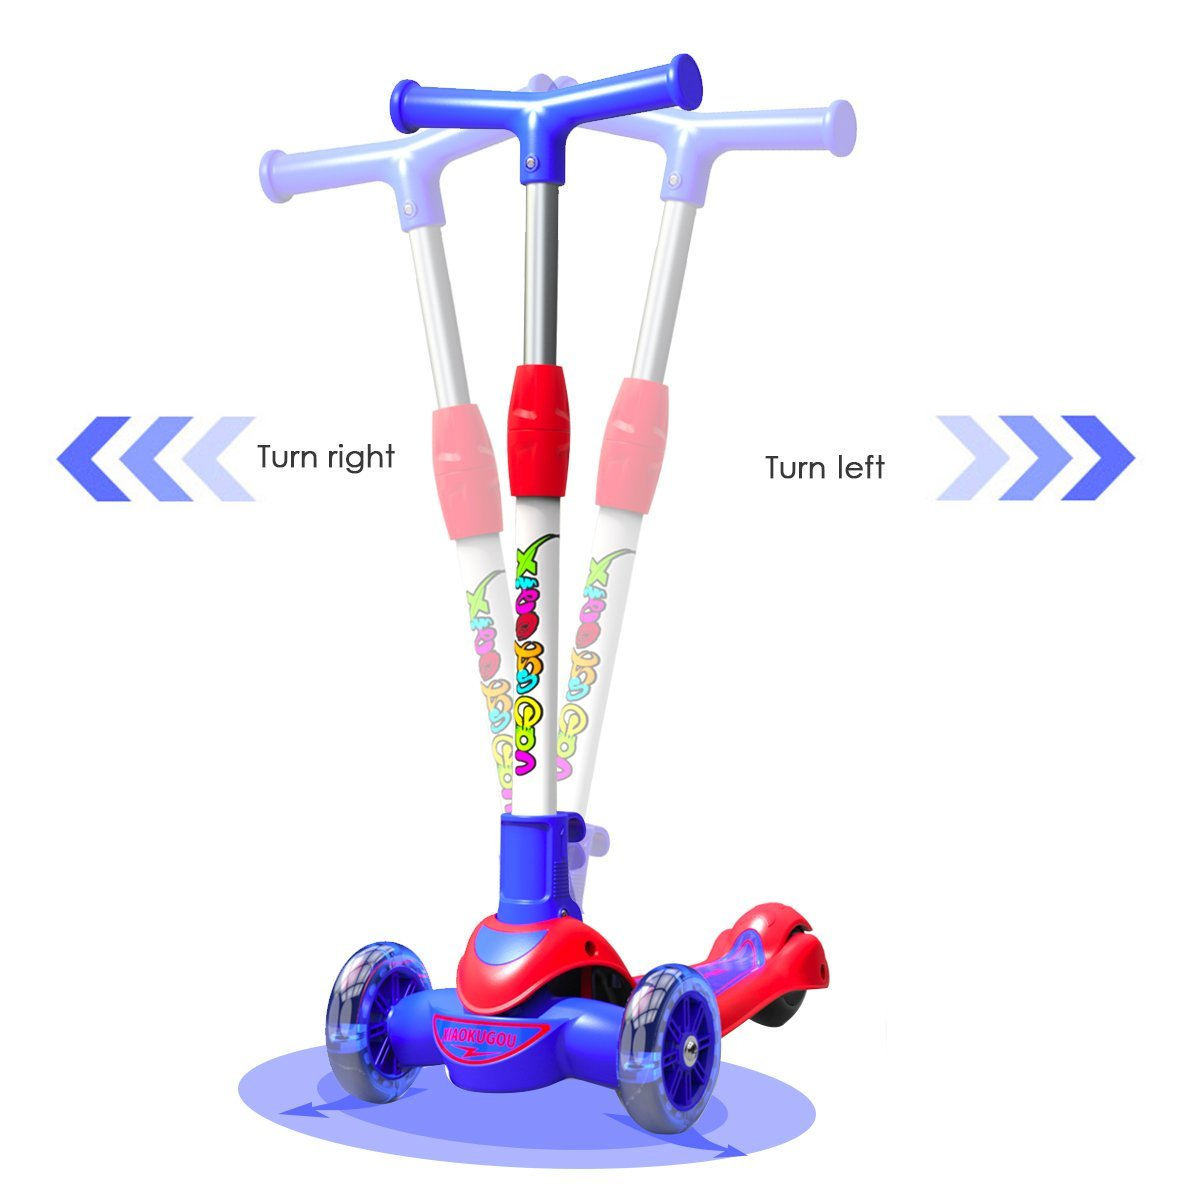 Greentest Scooter Foldable and Adjustable Height Lean to Steer 3 Wheel Scooters for Toddler Kids Boys Girls Age 3-8 by Greentest (Image #4)